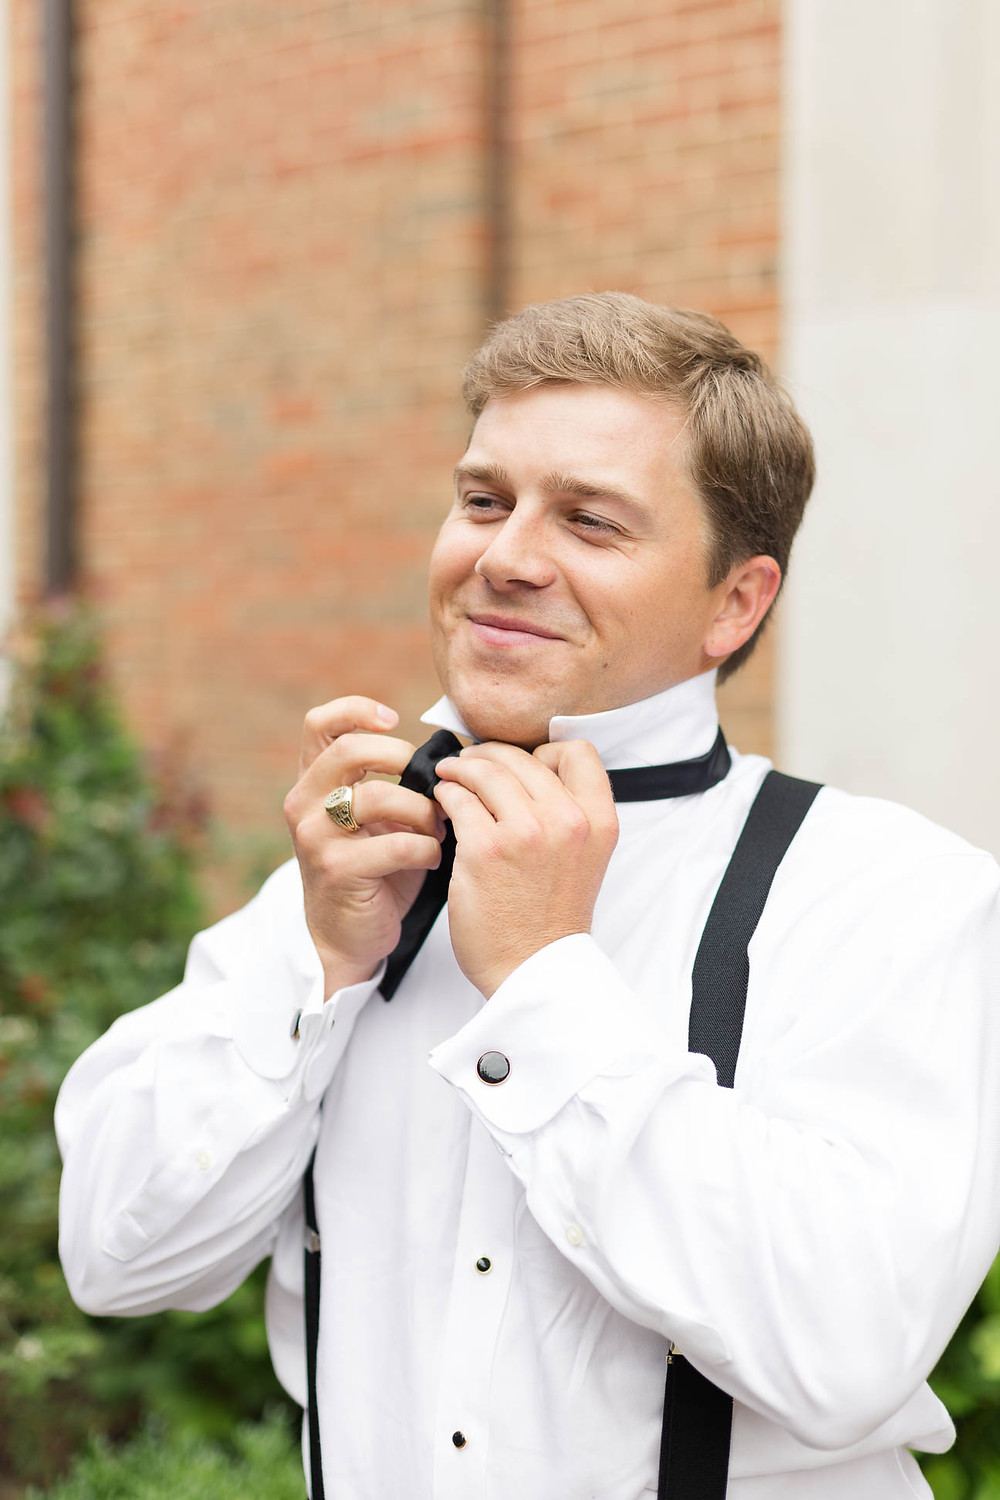 groom ties his bowtie on his wedding day